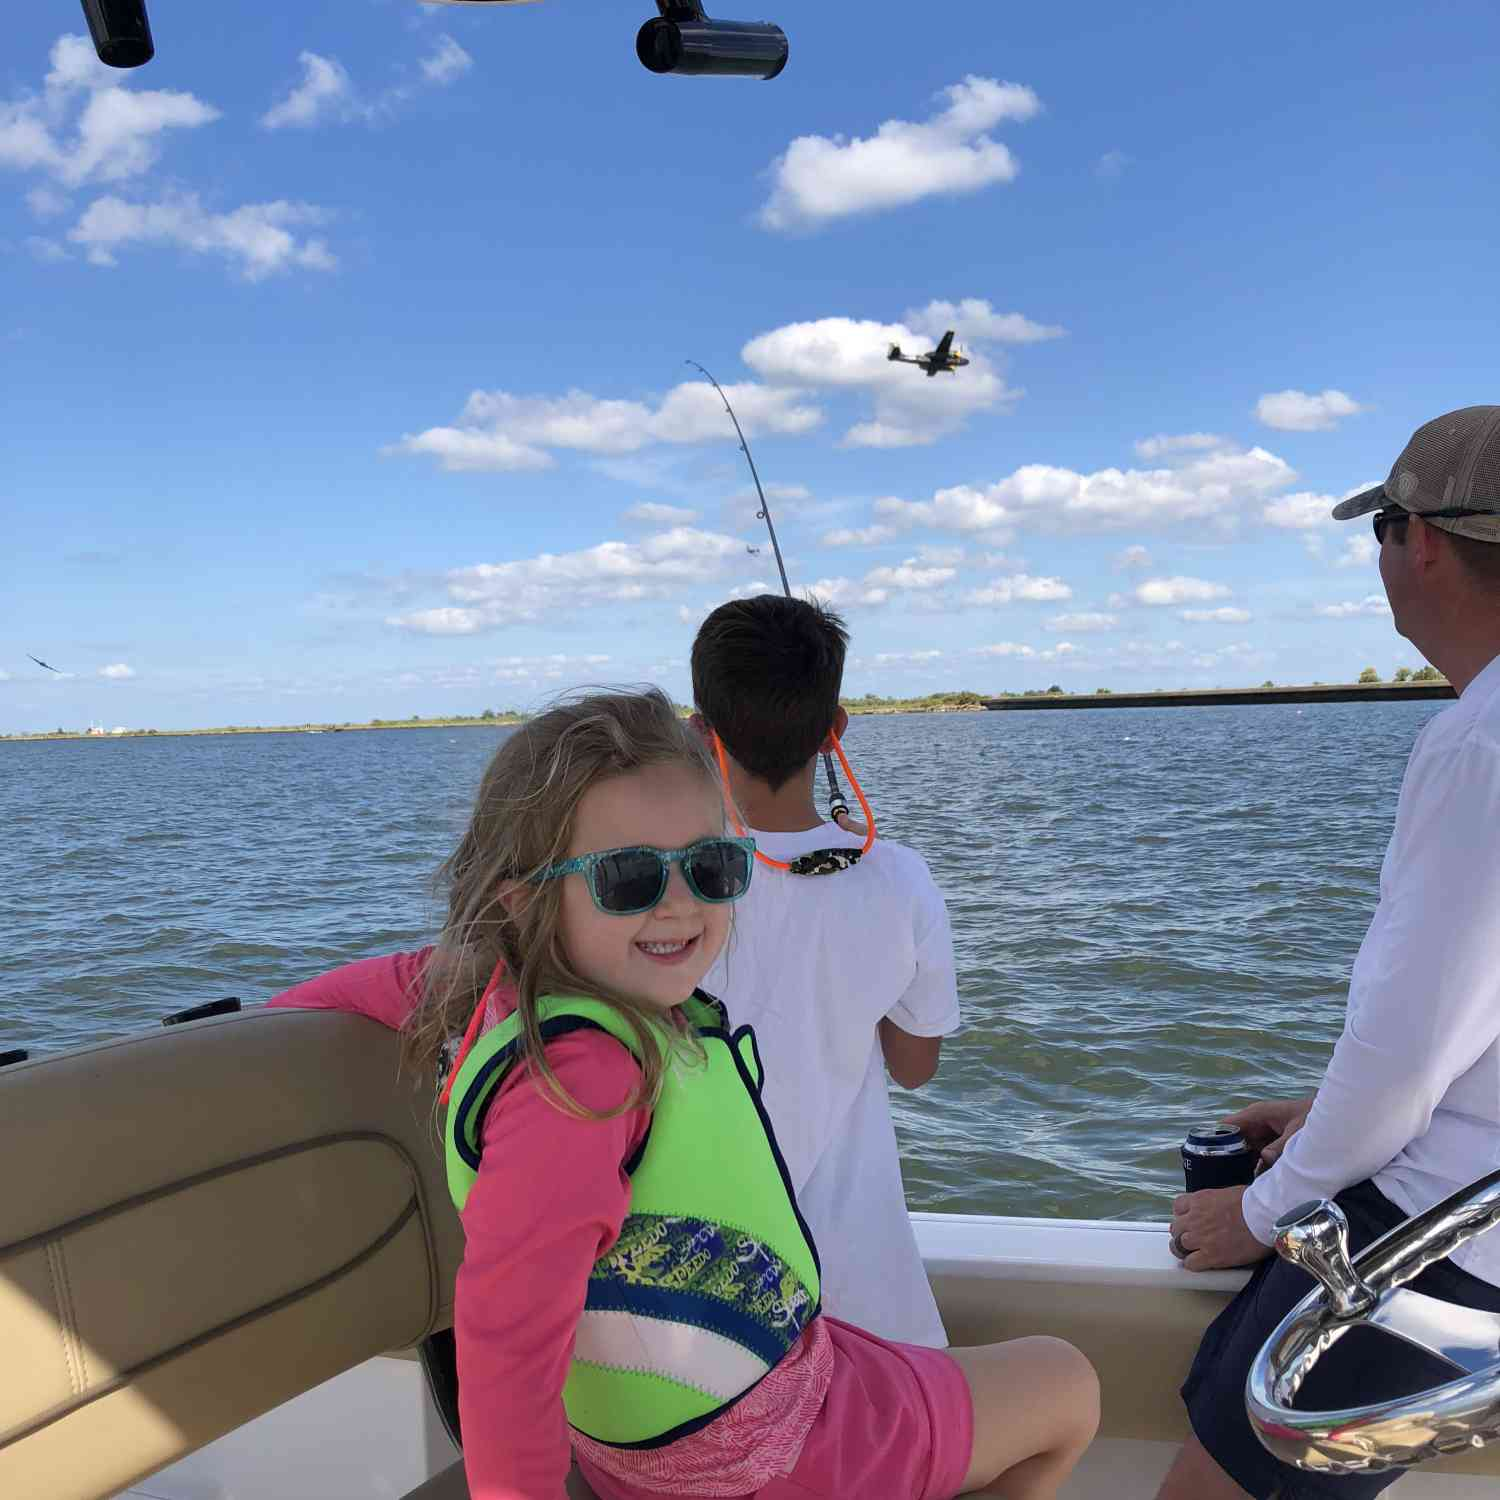 Title: All Smiles - On board their Sportsman Open 232 Center Console - Location: New Orleans Lakefront. Participating in the Photo Contest #SportsmanOctober2018